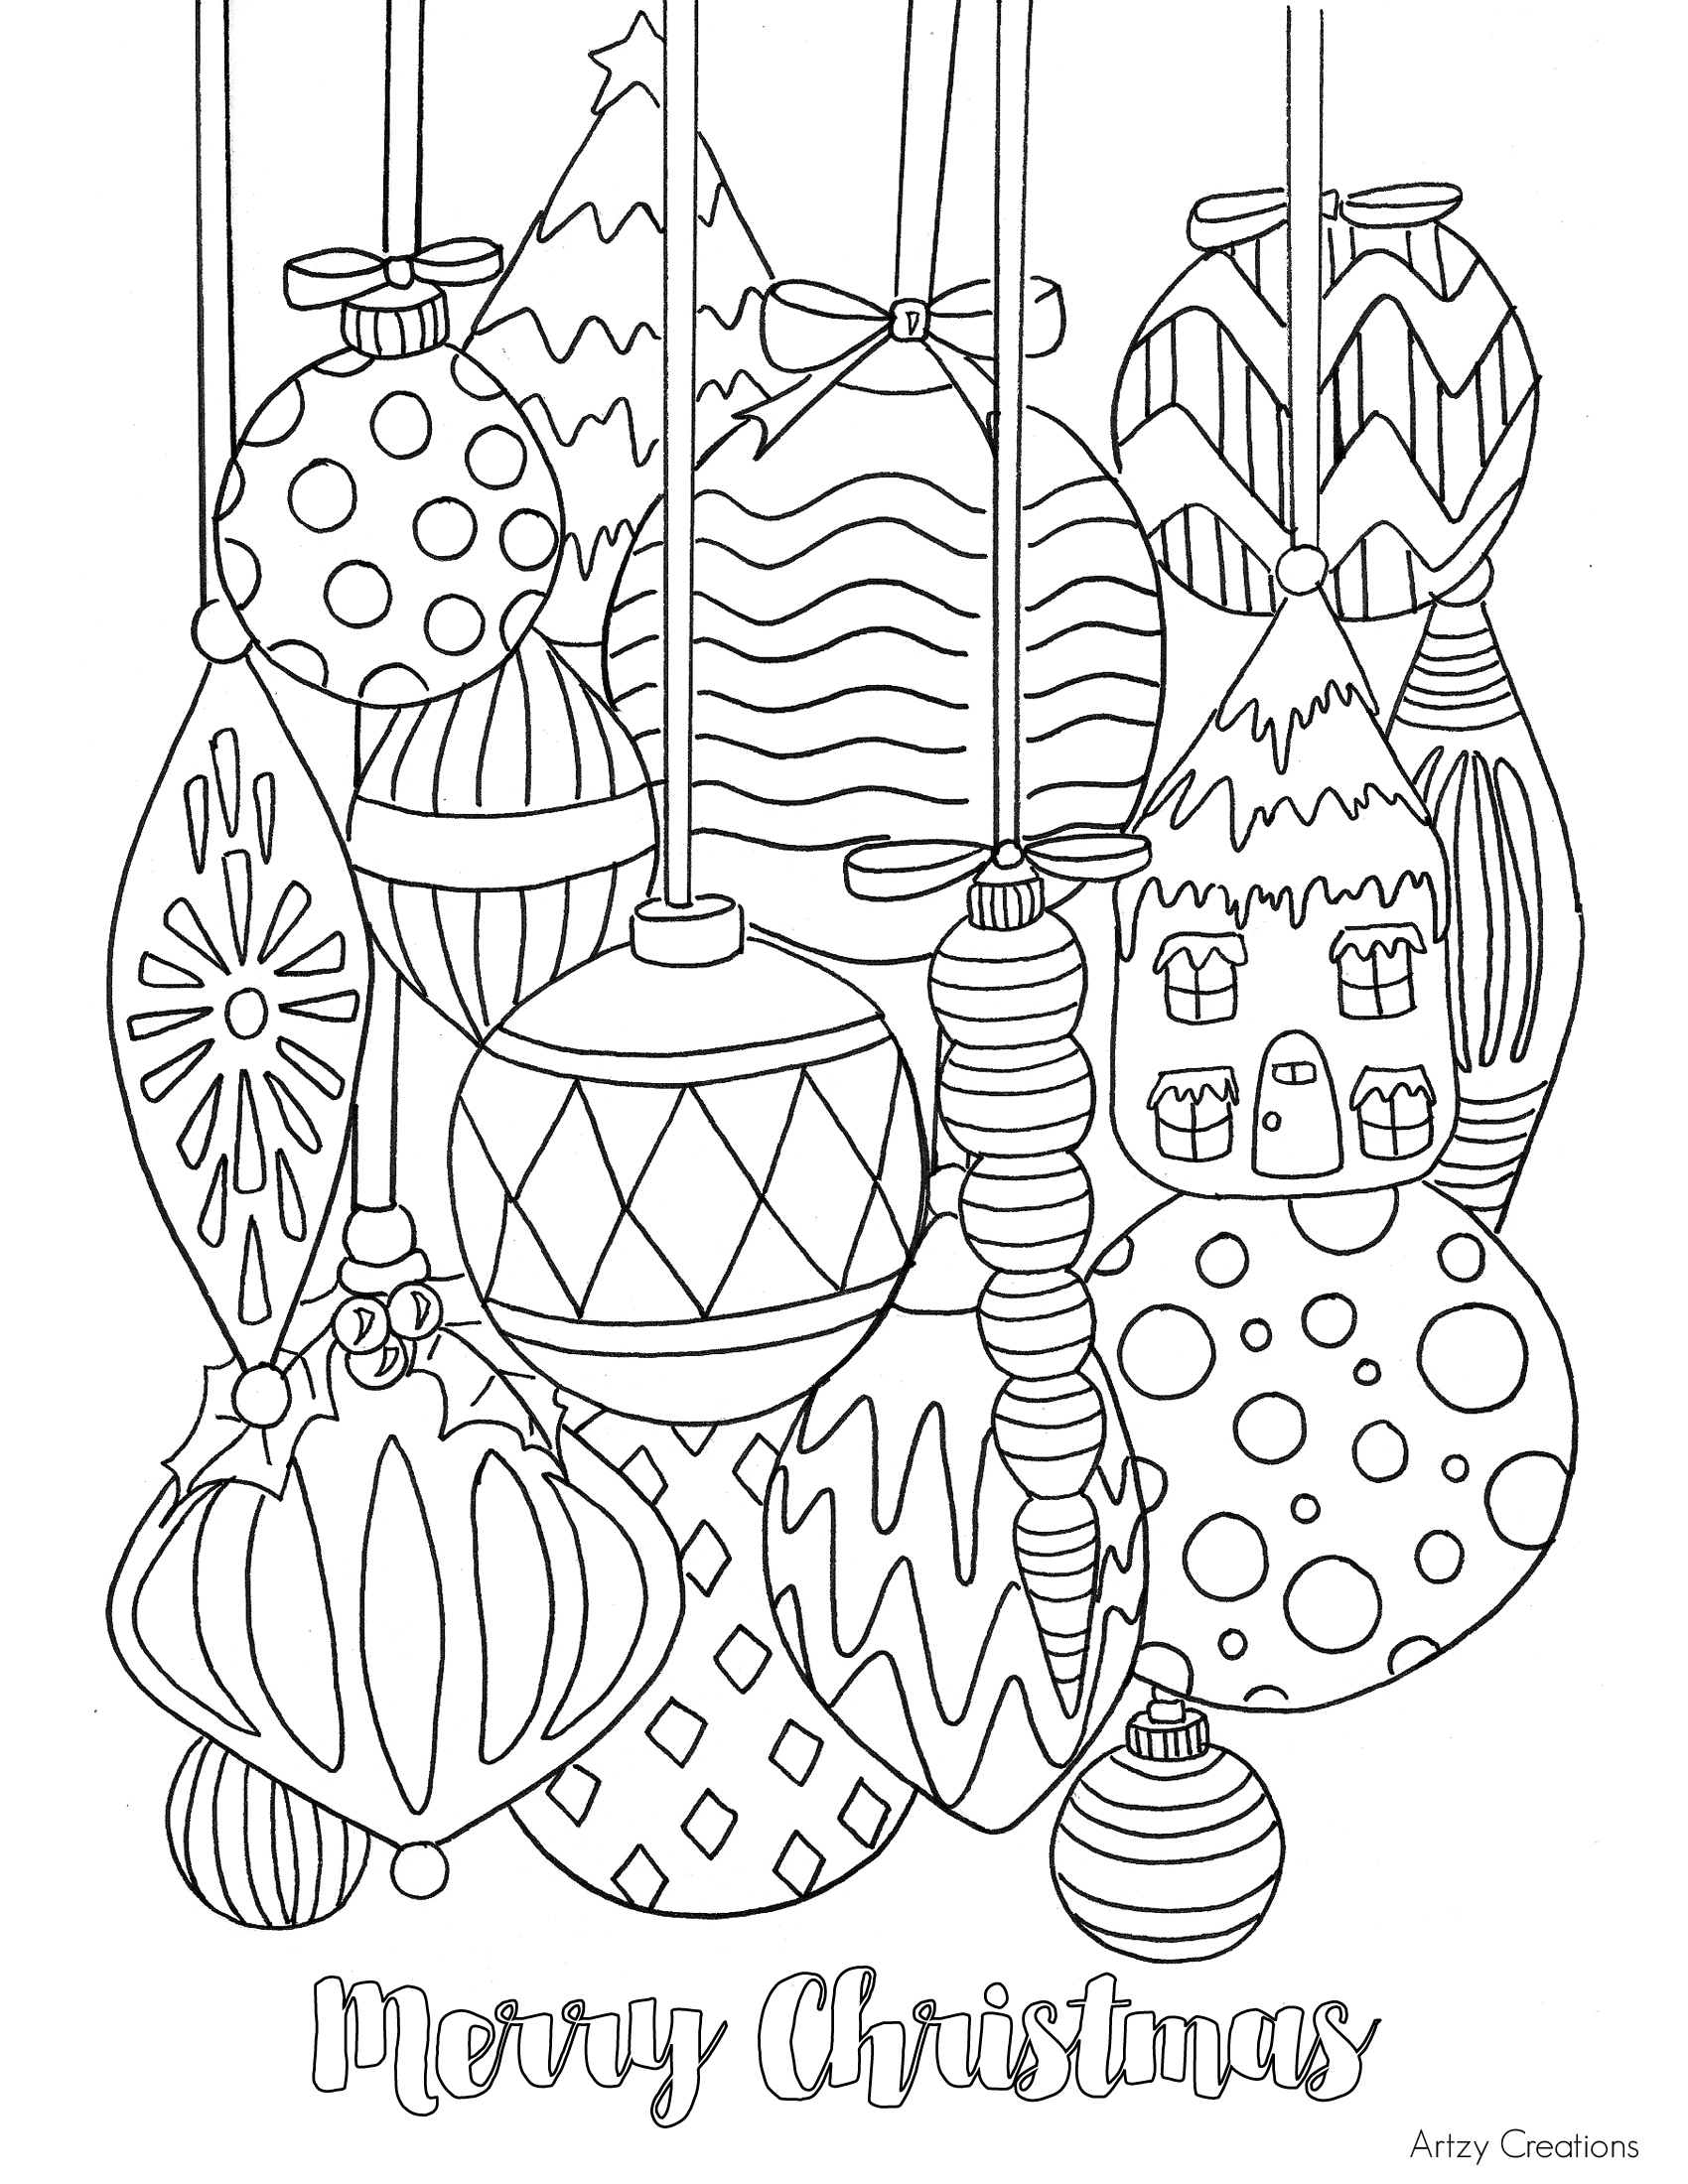 ornaments coloring pages Free Christmas Ornament Coloring Page   TGIF   This Grandma is Fun ornaments coloring pages